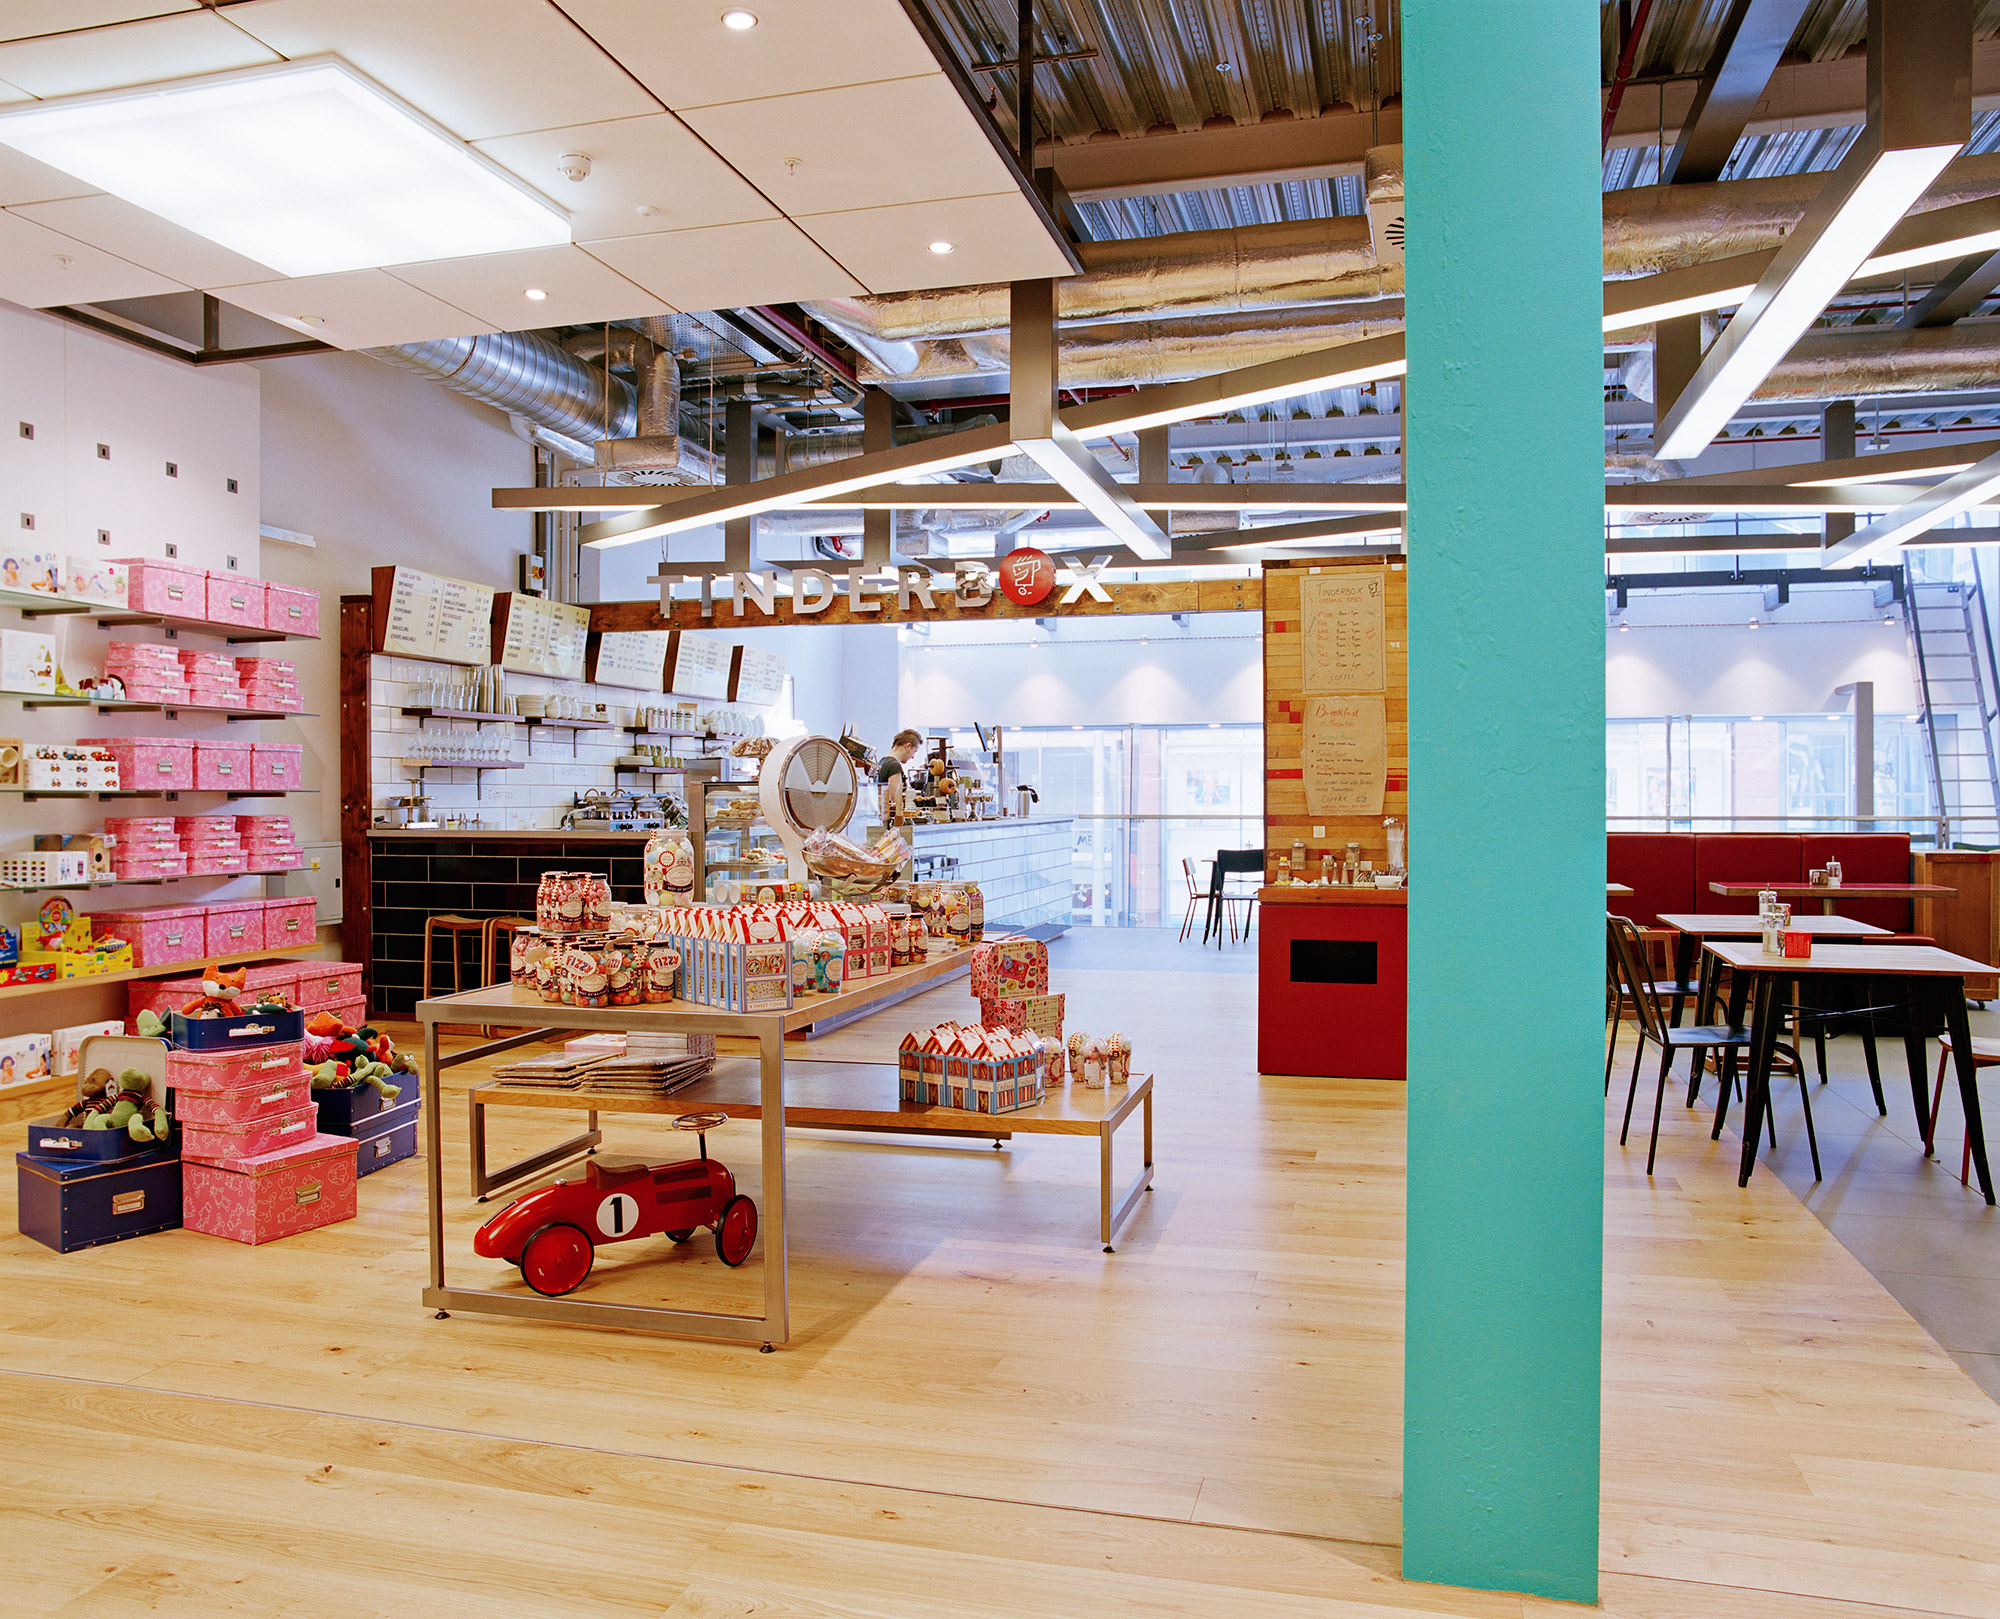 Tinderbox Cafe, Paperchase Glasgow